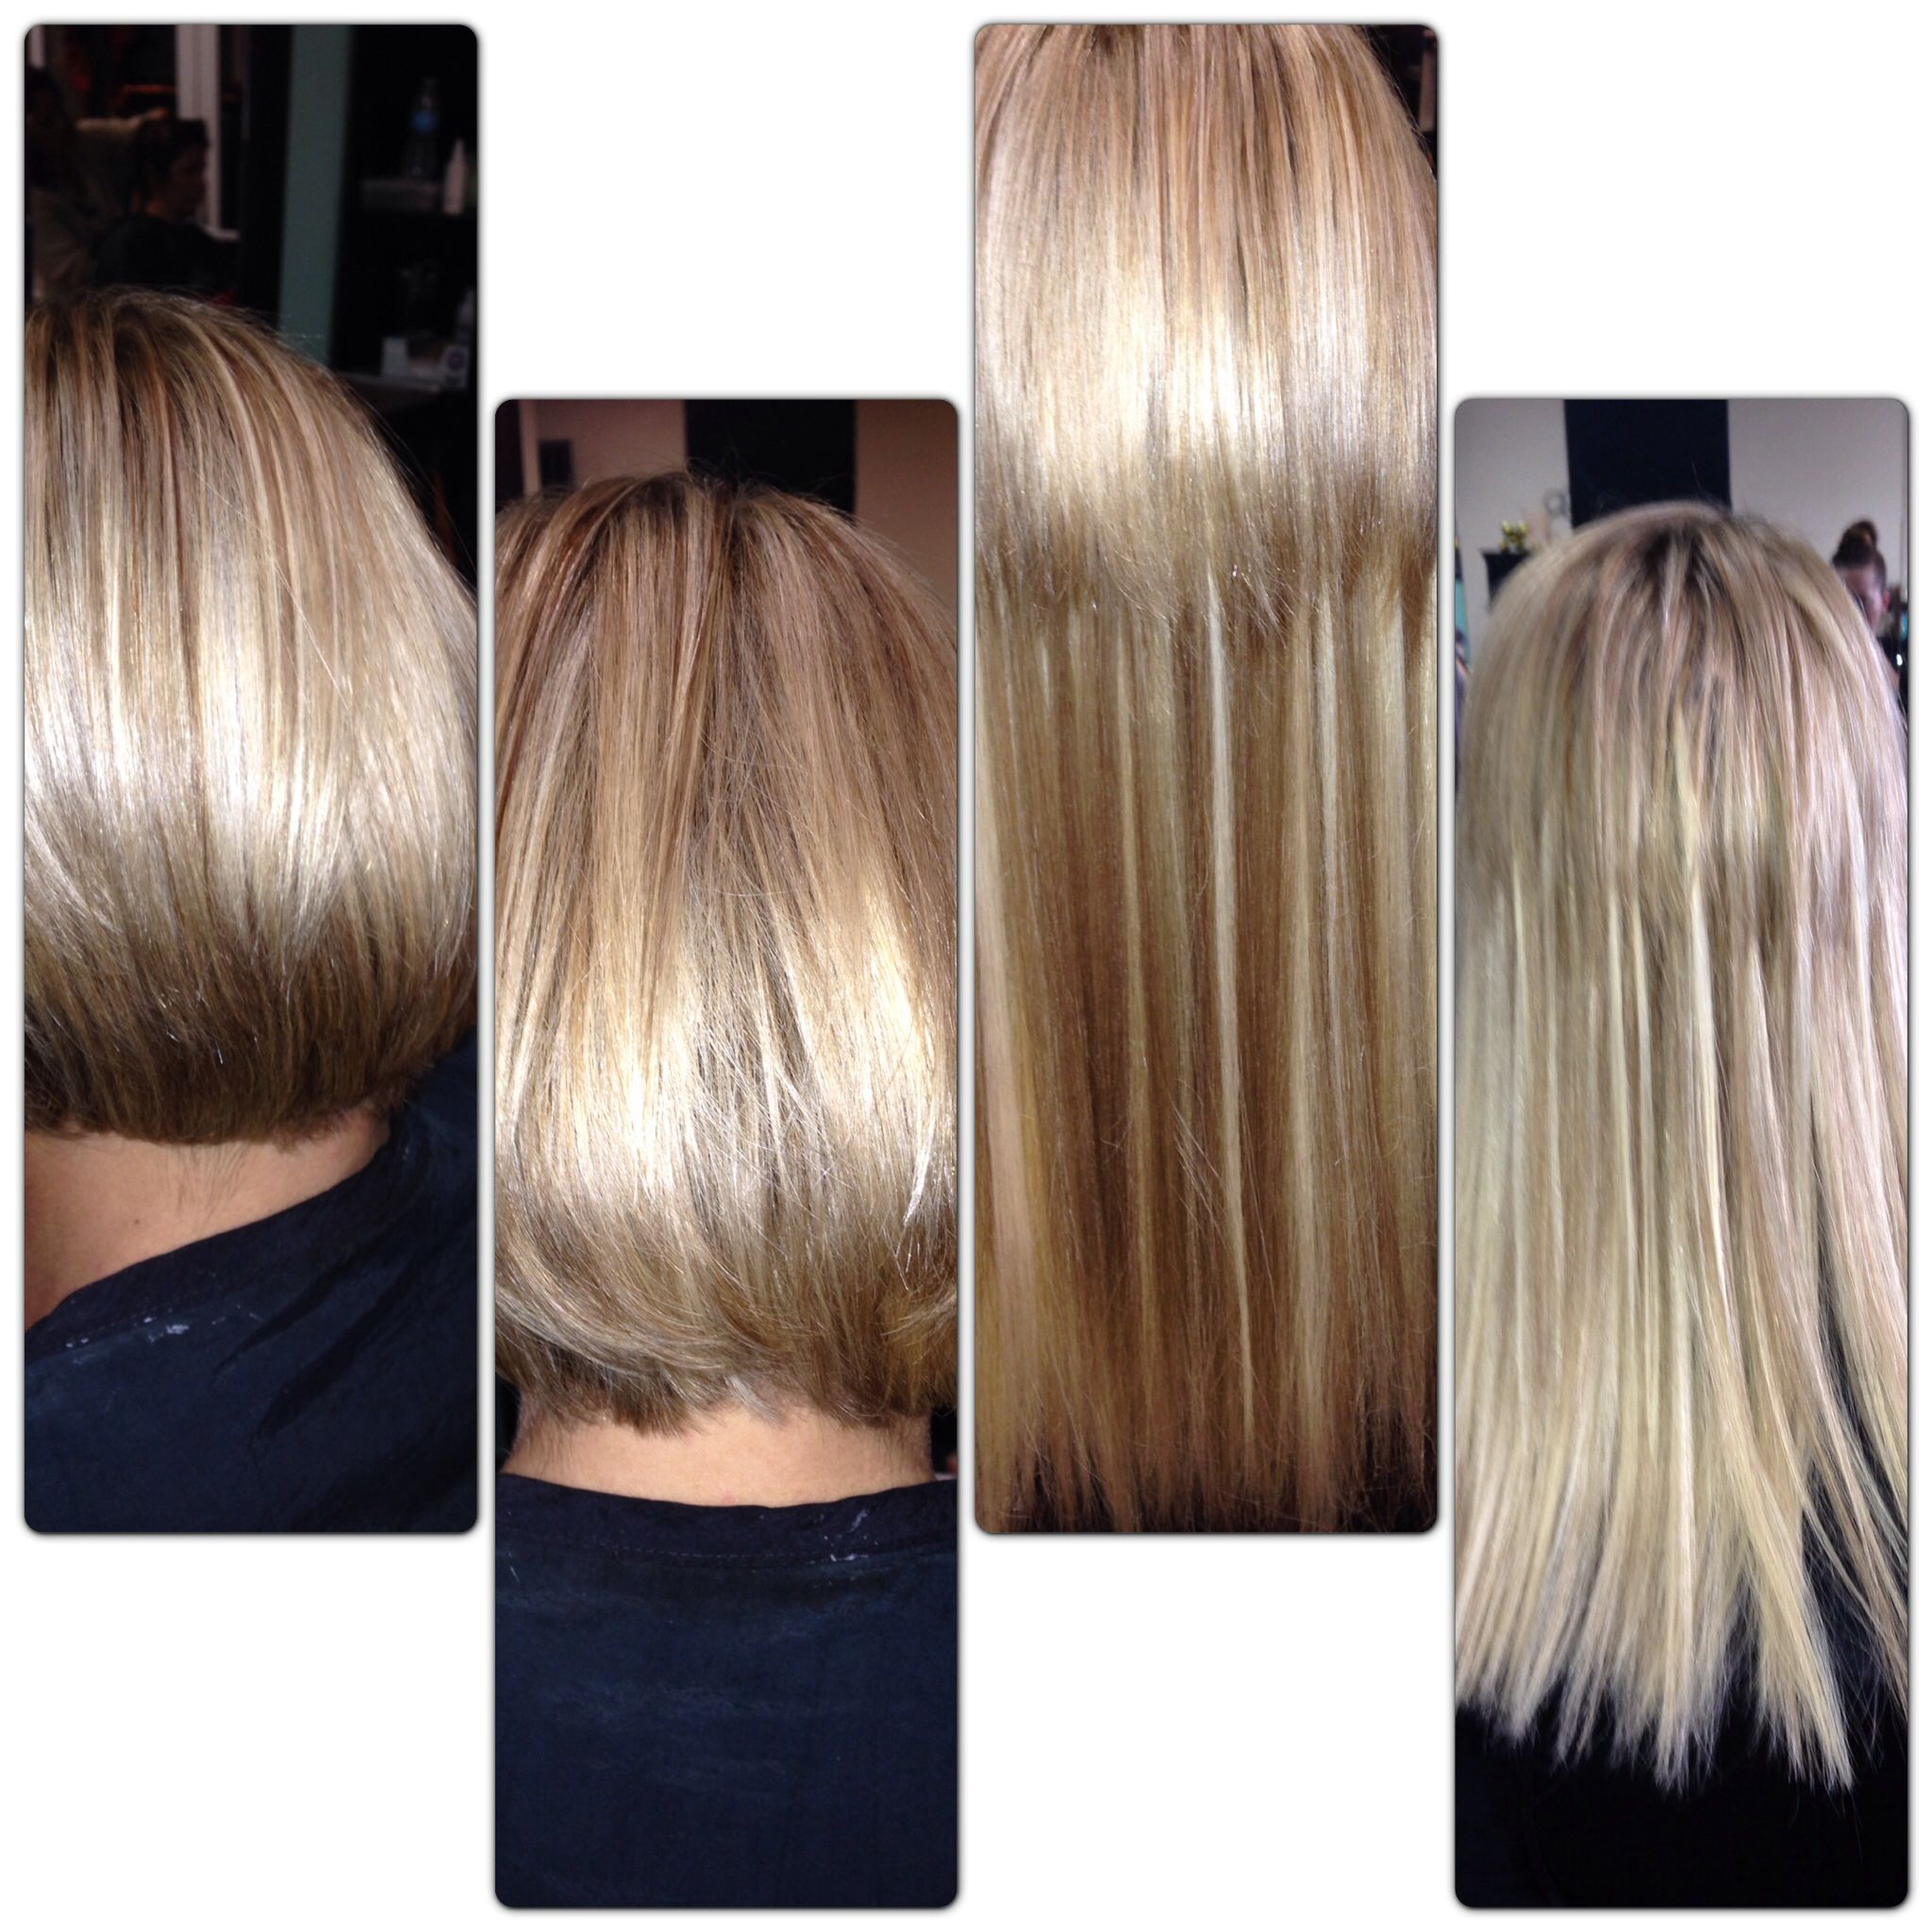 Transforming a short bob to long hair she will have to curl her transforming a short bob to long hair she will have to curl her hair or style pmusecretfo Image collections